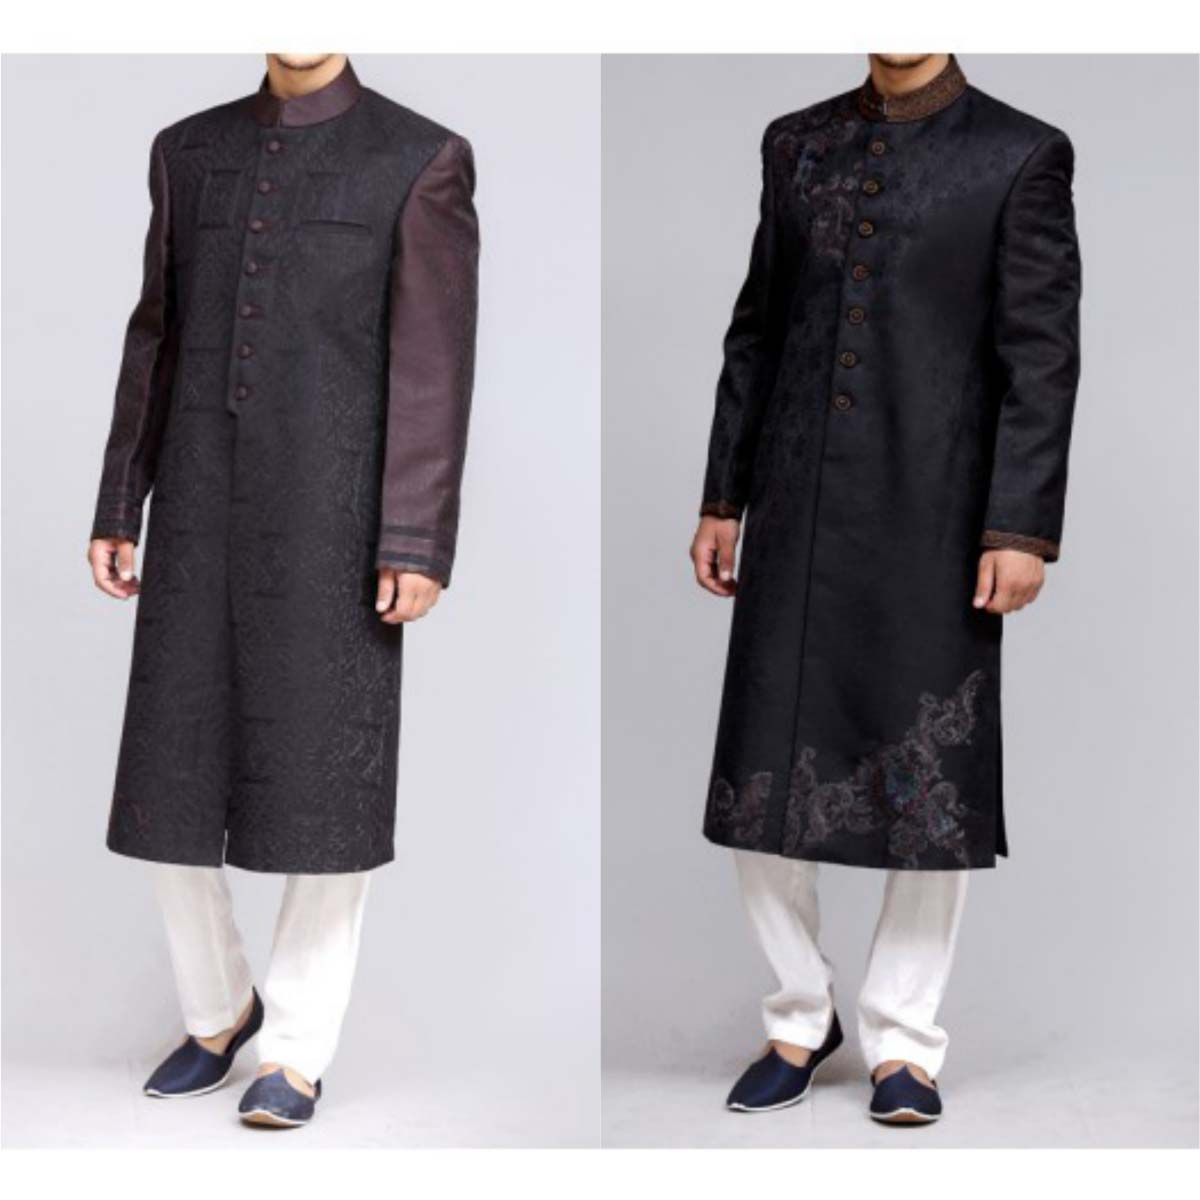 j-j-junaid-jamshed-shwerwanis-design-for-groom-2016-1